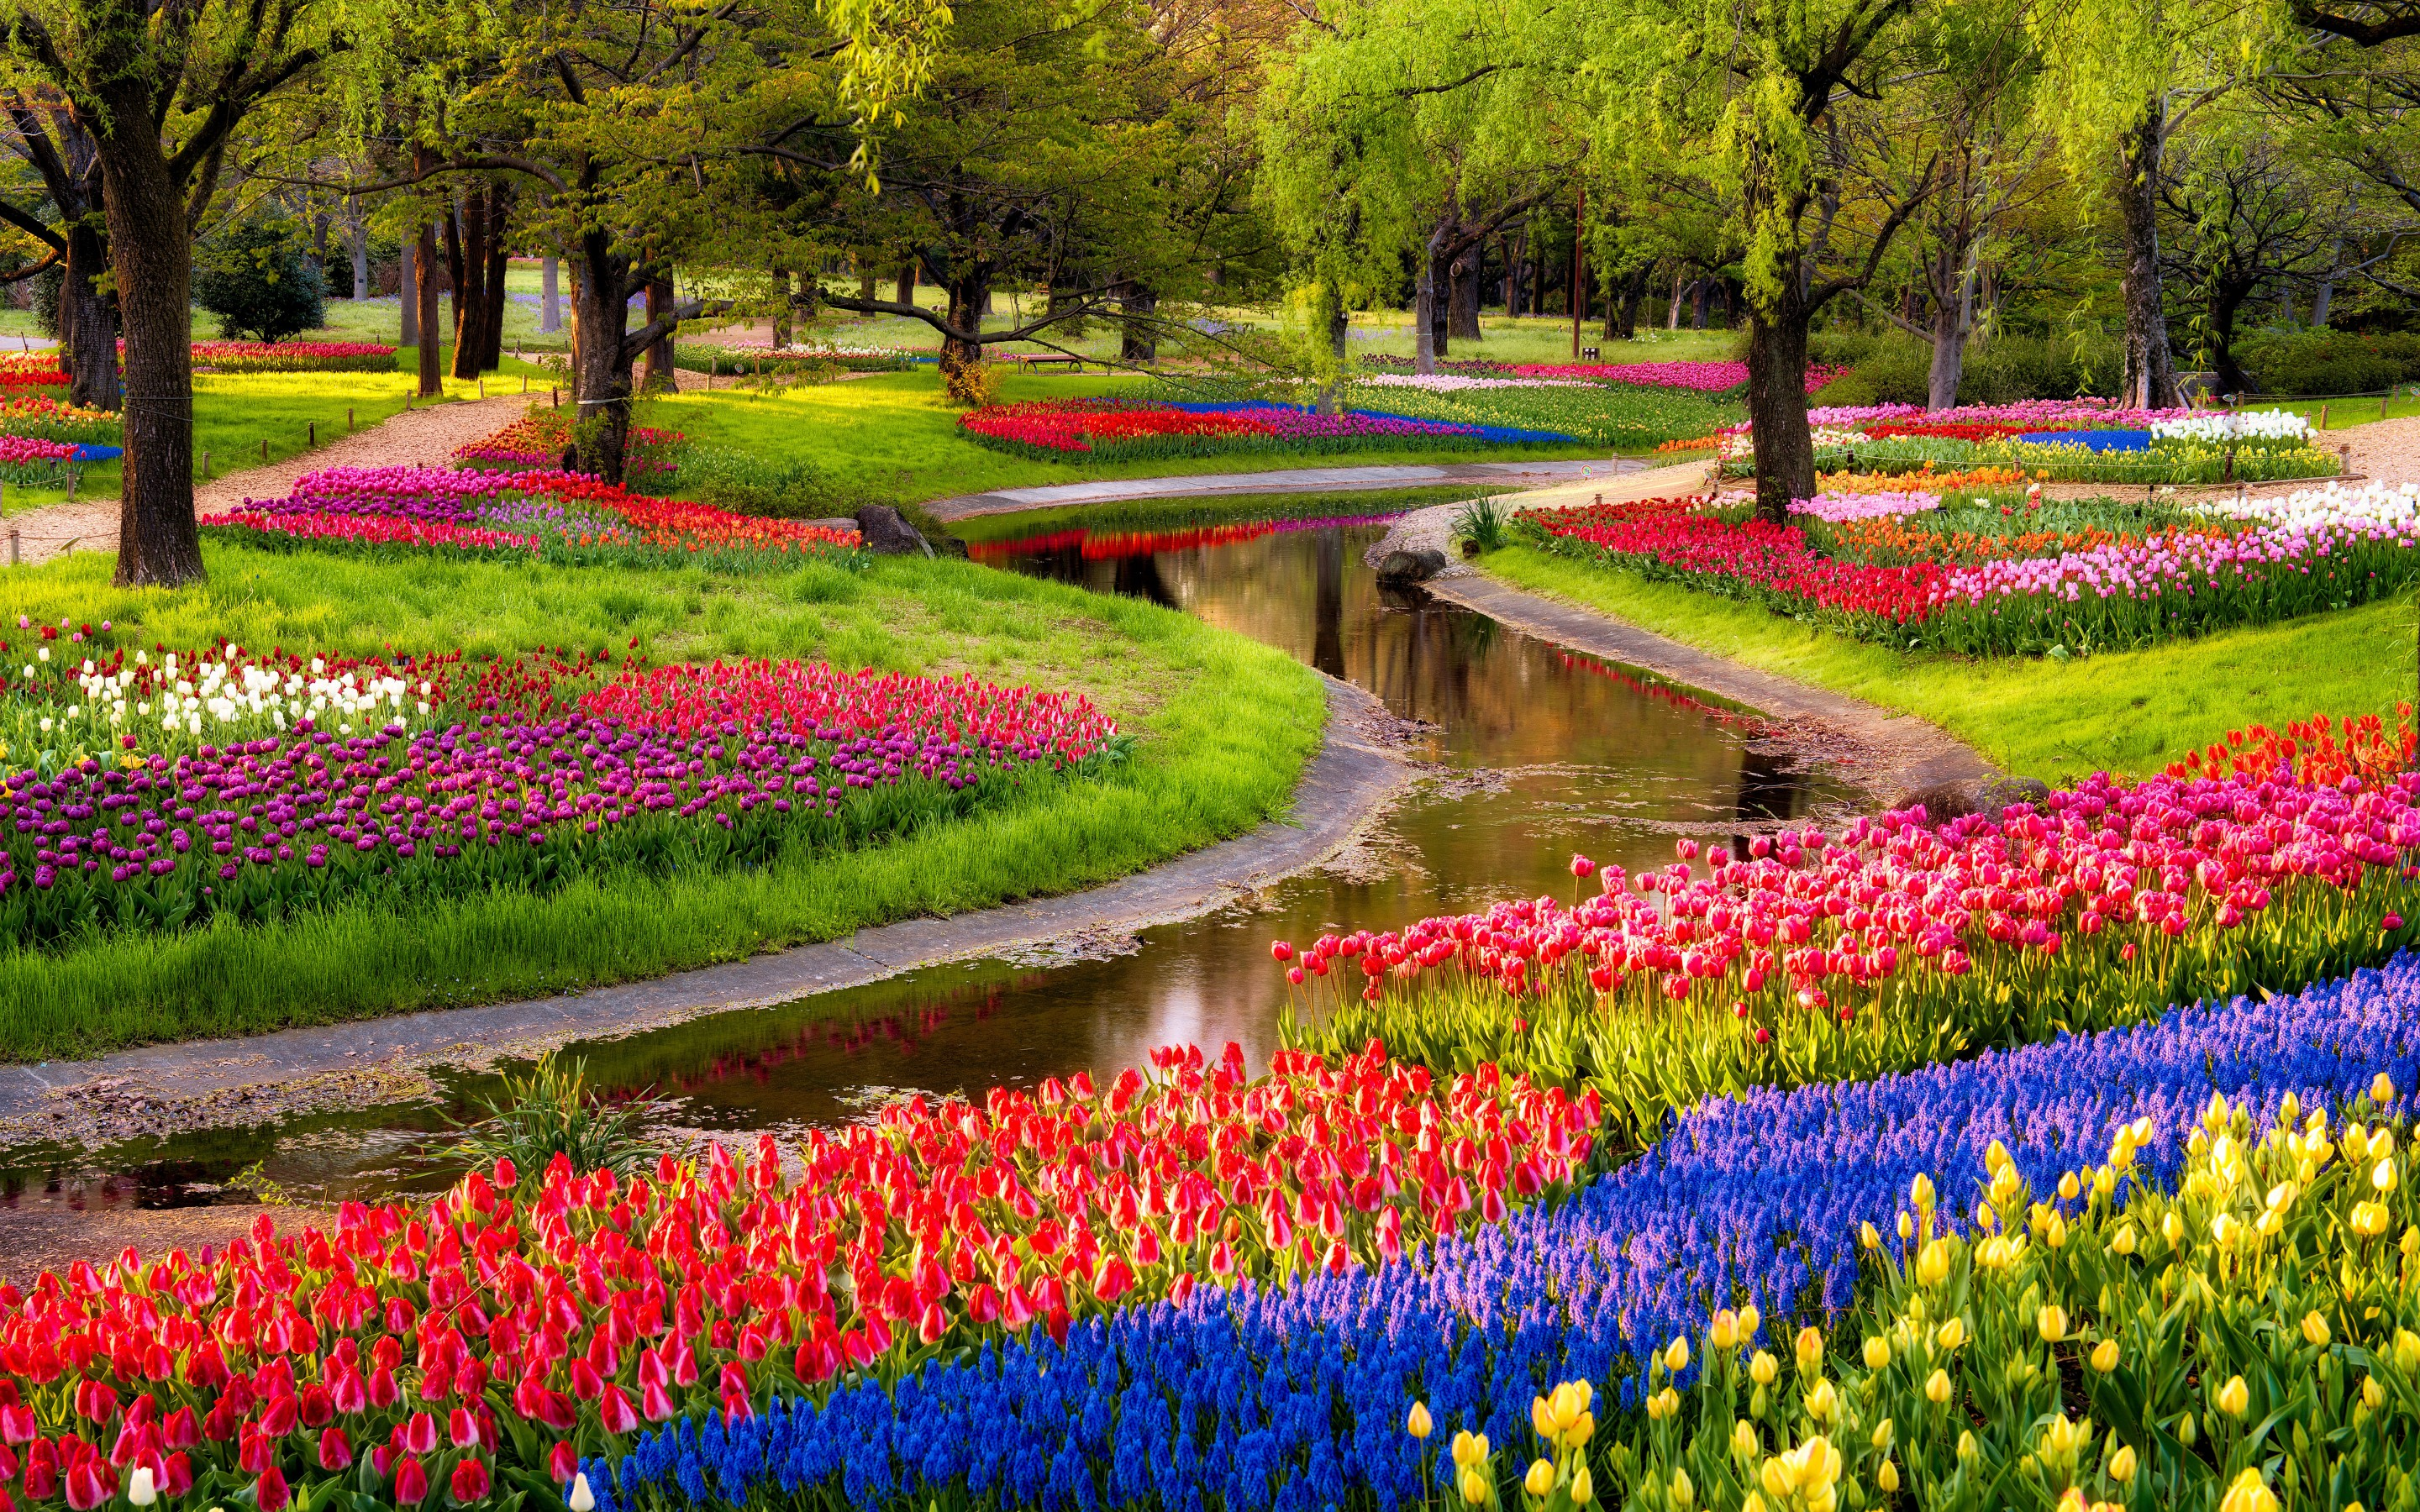 Hd wallpaper garden -  Colorful Garden Flowers Hd Free Wallpapers